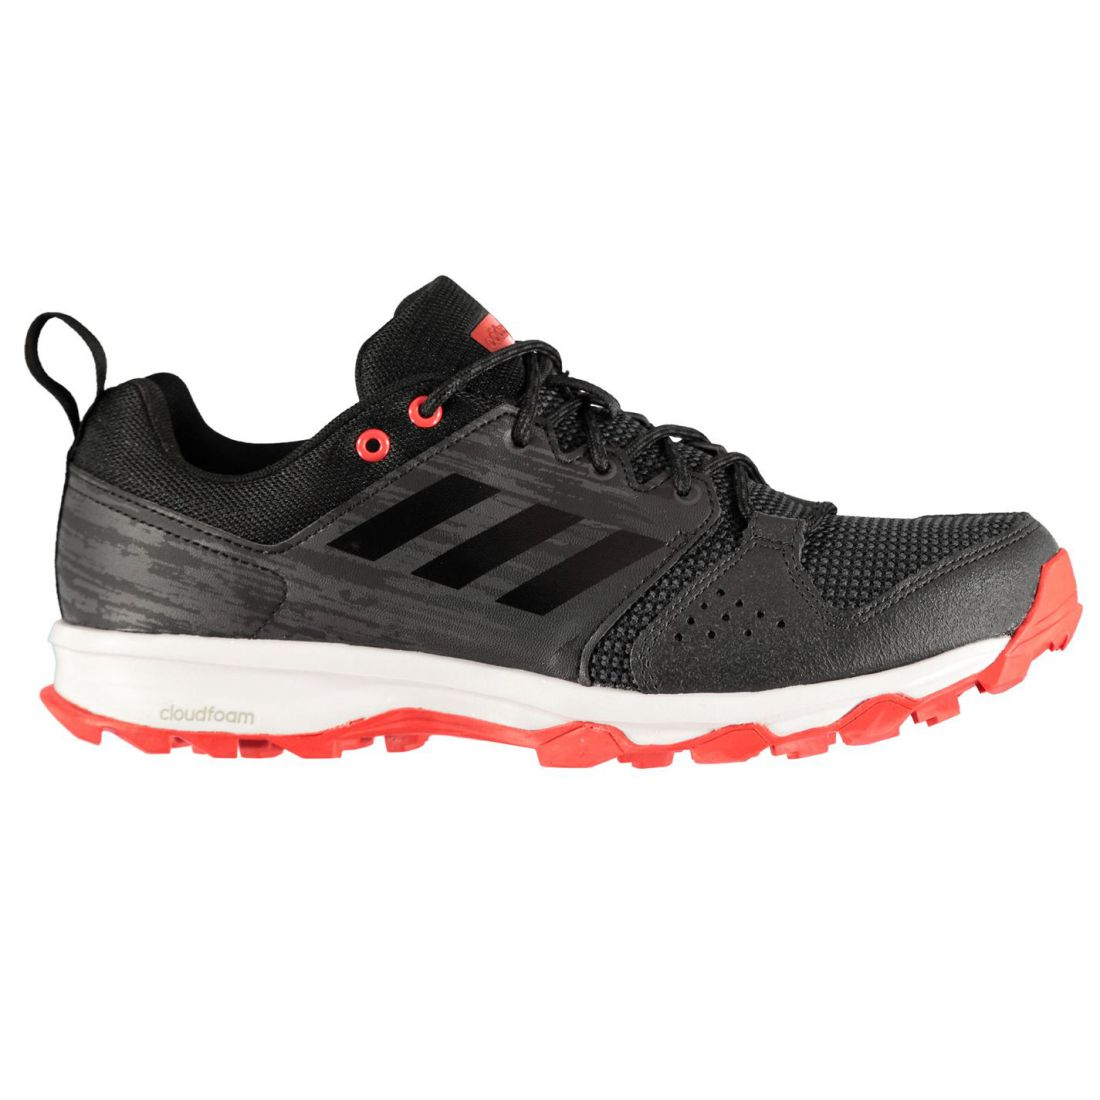 64af45ba8784 adidas Mens Galaxy Trail Running Shoes Runners Lace Up Breathable ...